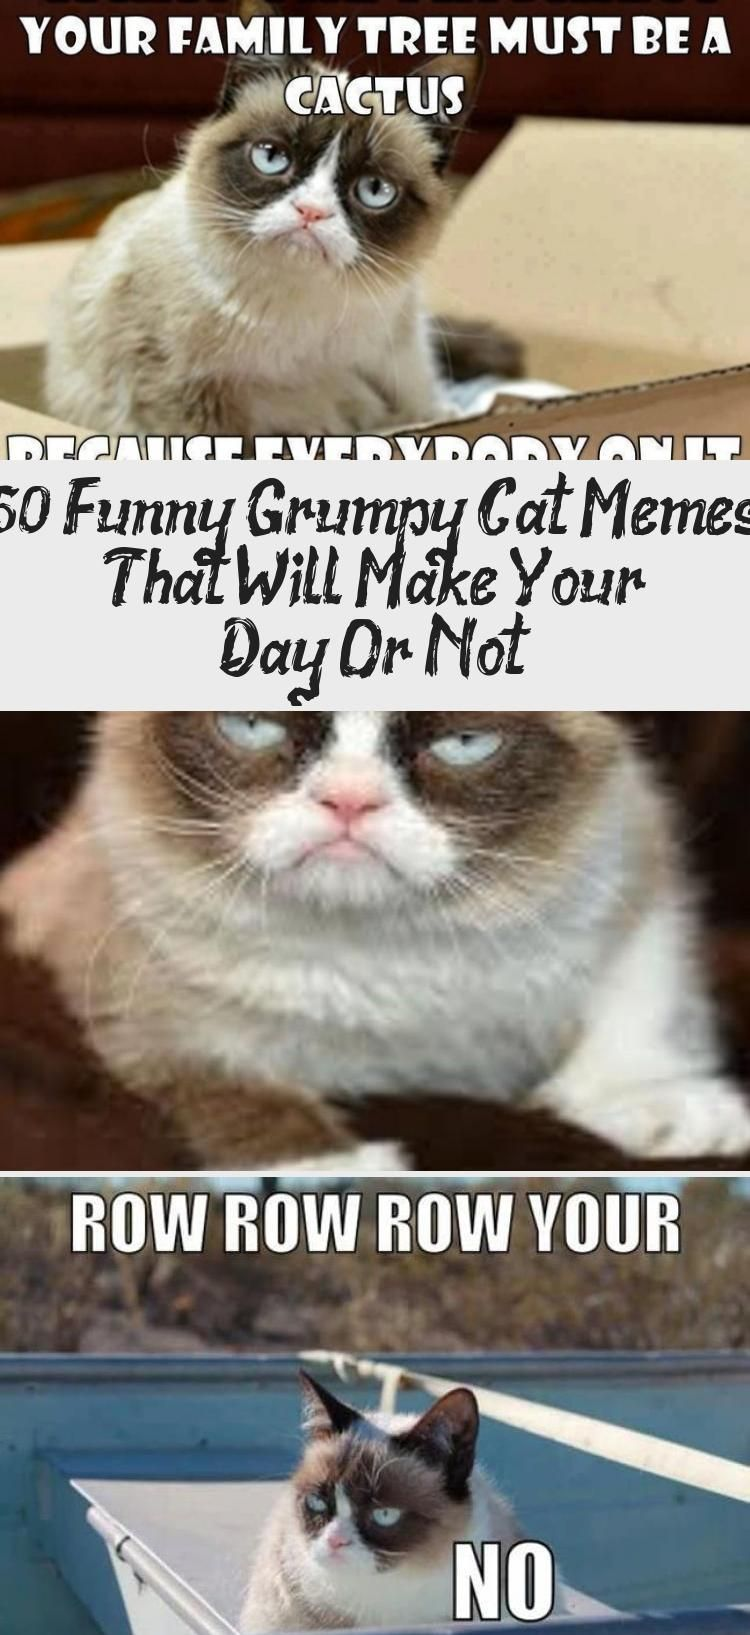 50 Funny Grumpy Cat Memes That Will Make Your Day… Or Not